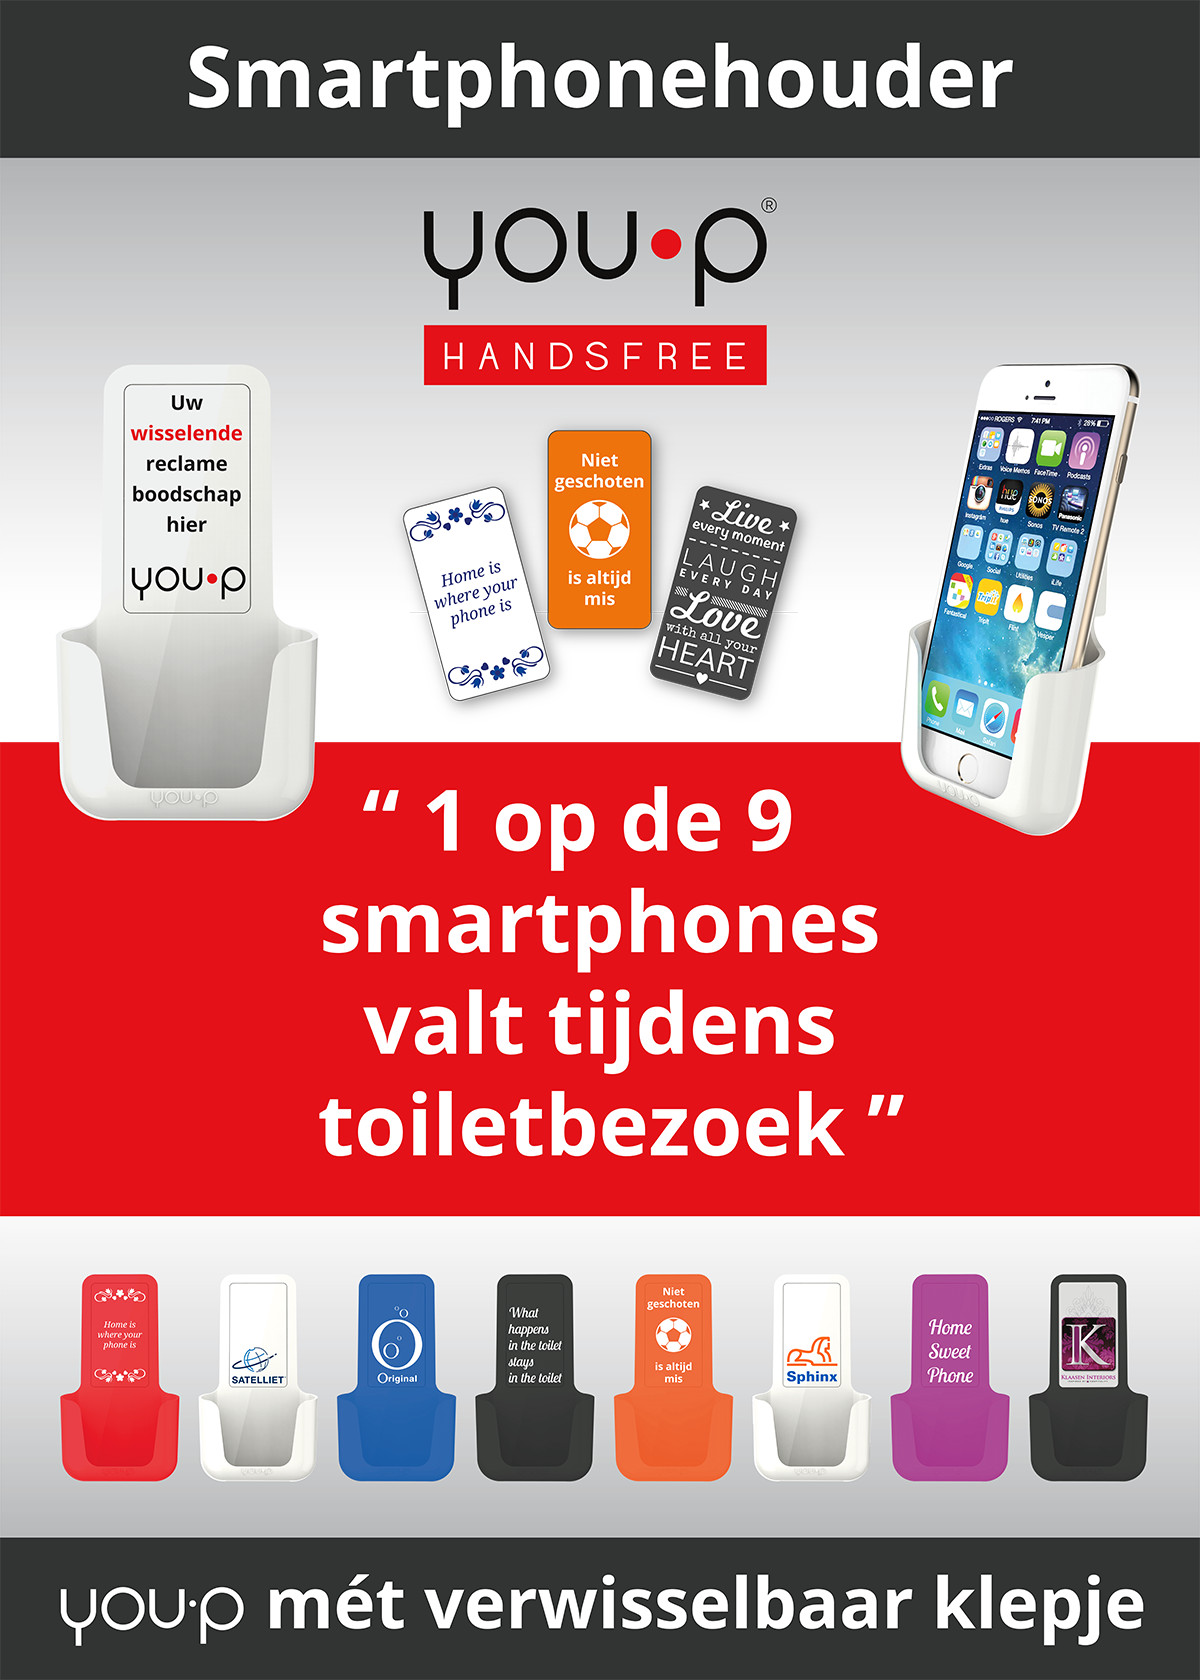 you-p handsfree | smartphone holder | telefoonhouder - horecawerf you-p flyer 2